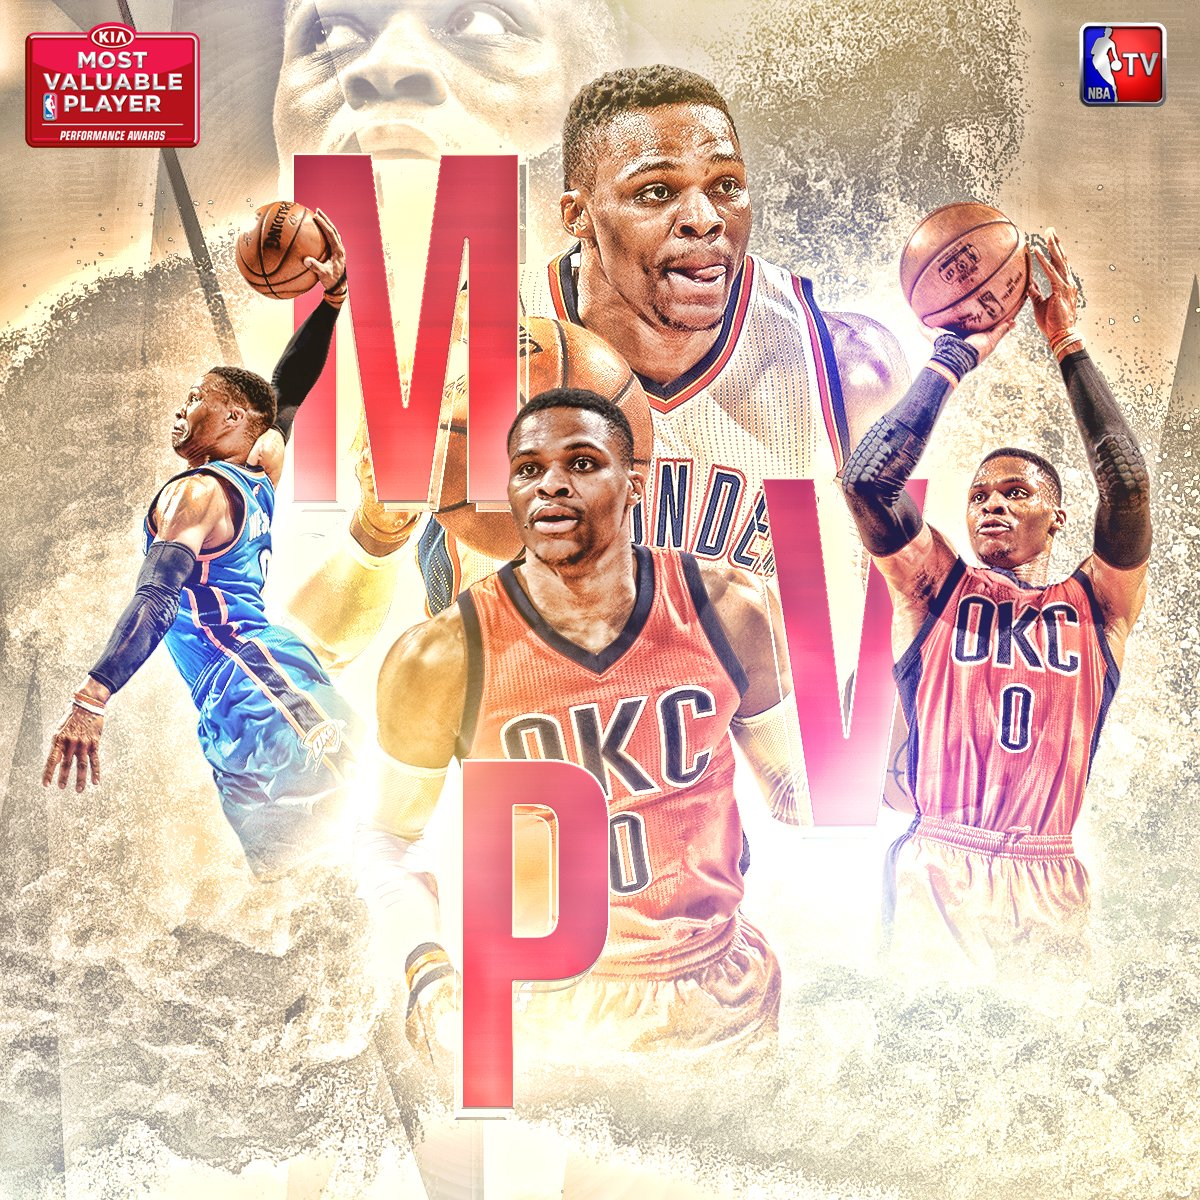 The 2016-17 KIA NBA Most Valuable Player is Russell Westbrook! #NBAAwa...